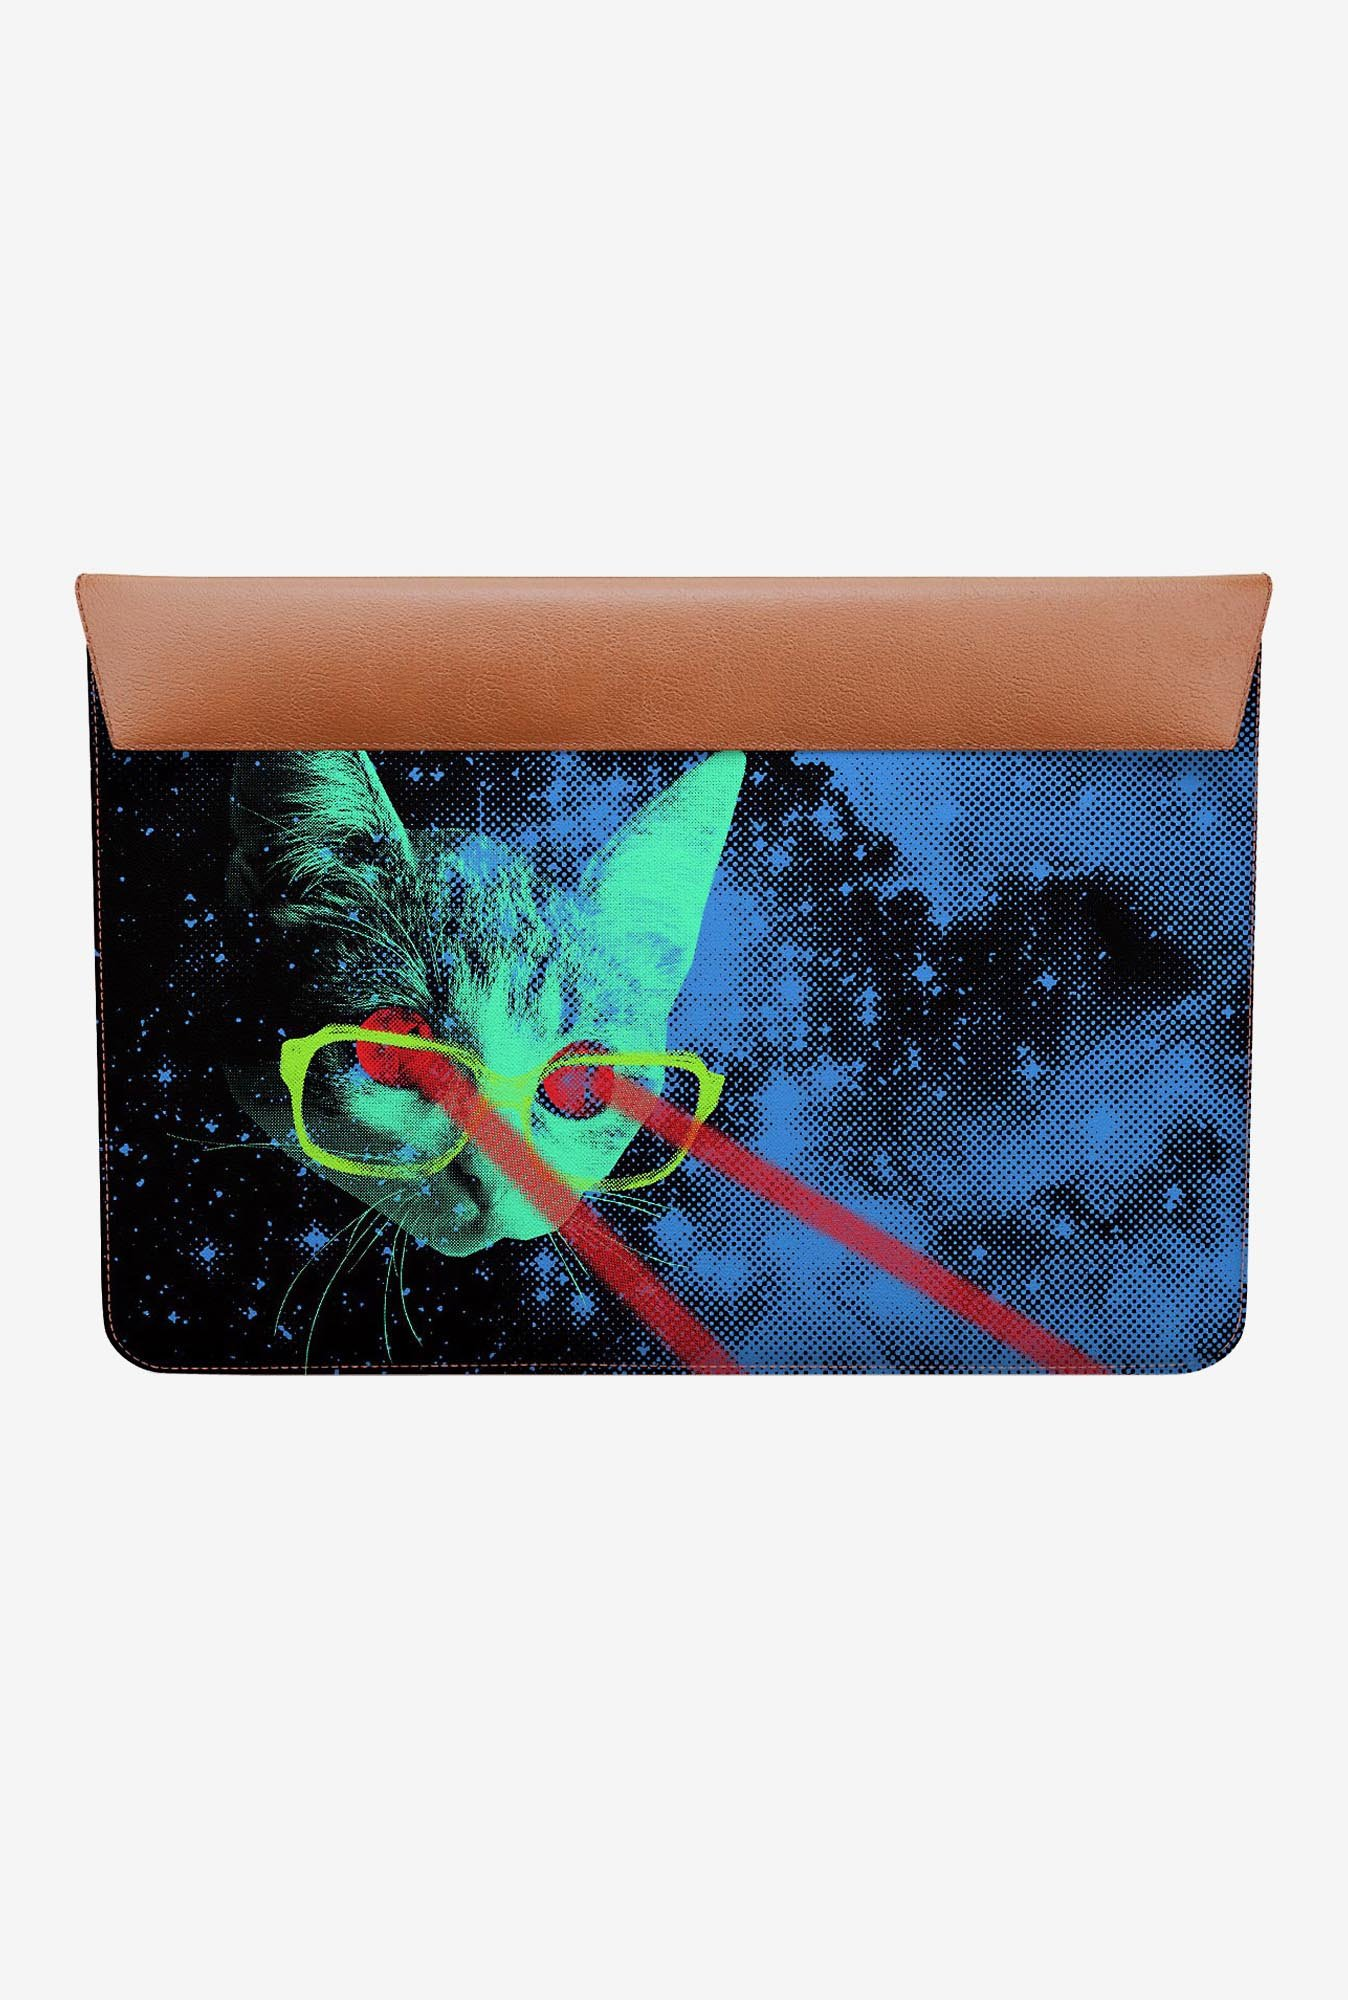 DailyObjects Laser Cat Space MacBook 12 Envelope Sleeve